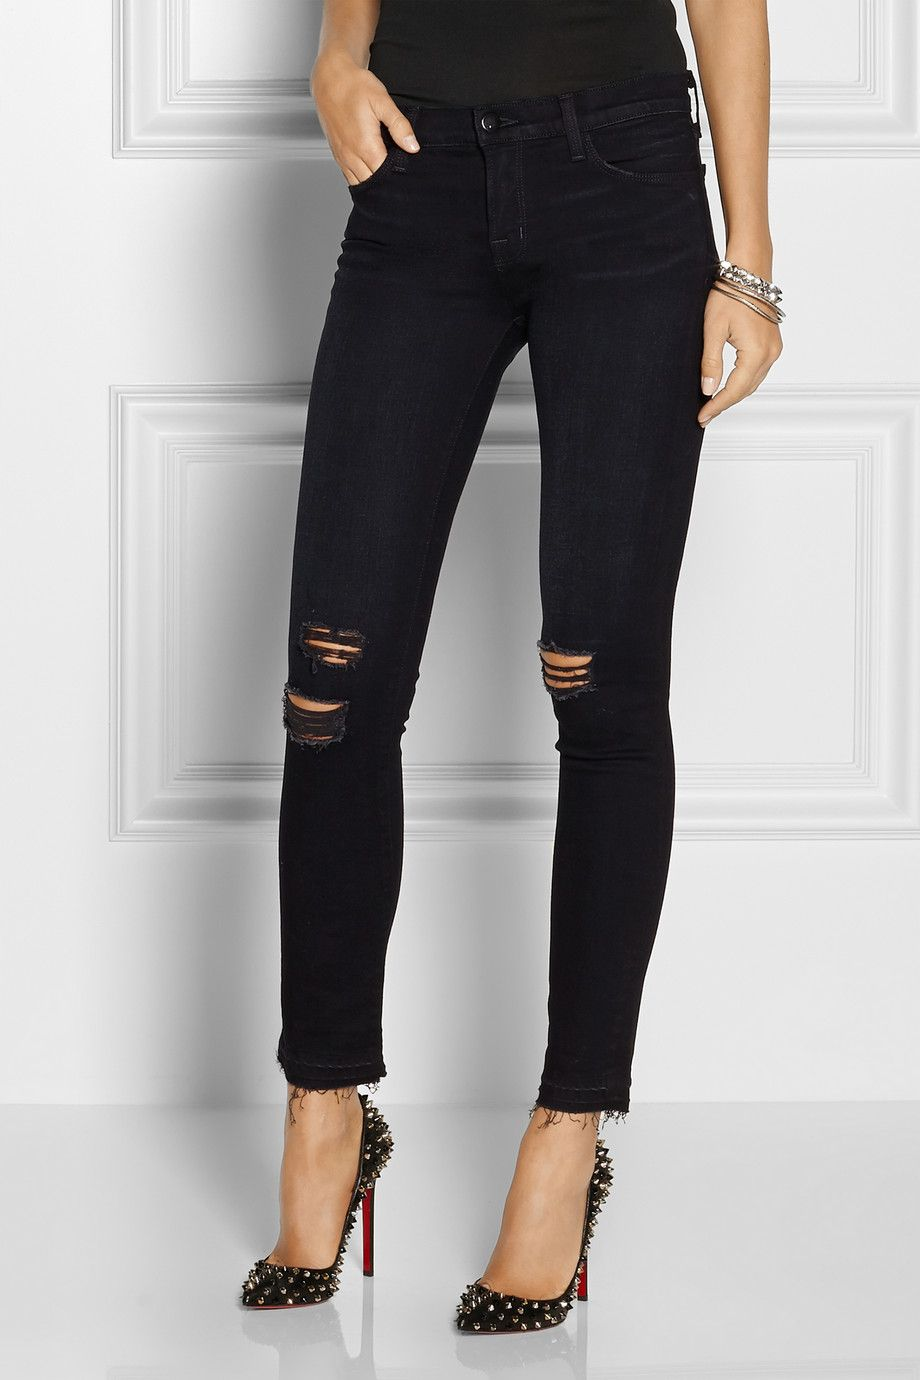 811 Distressed Mid-rise Skinny Jeans - Dark denim J Brand